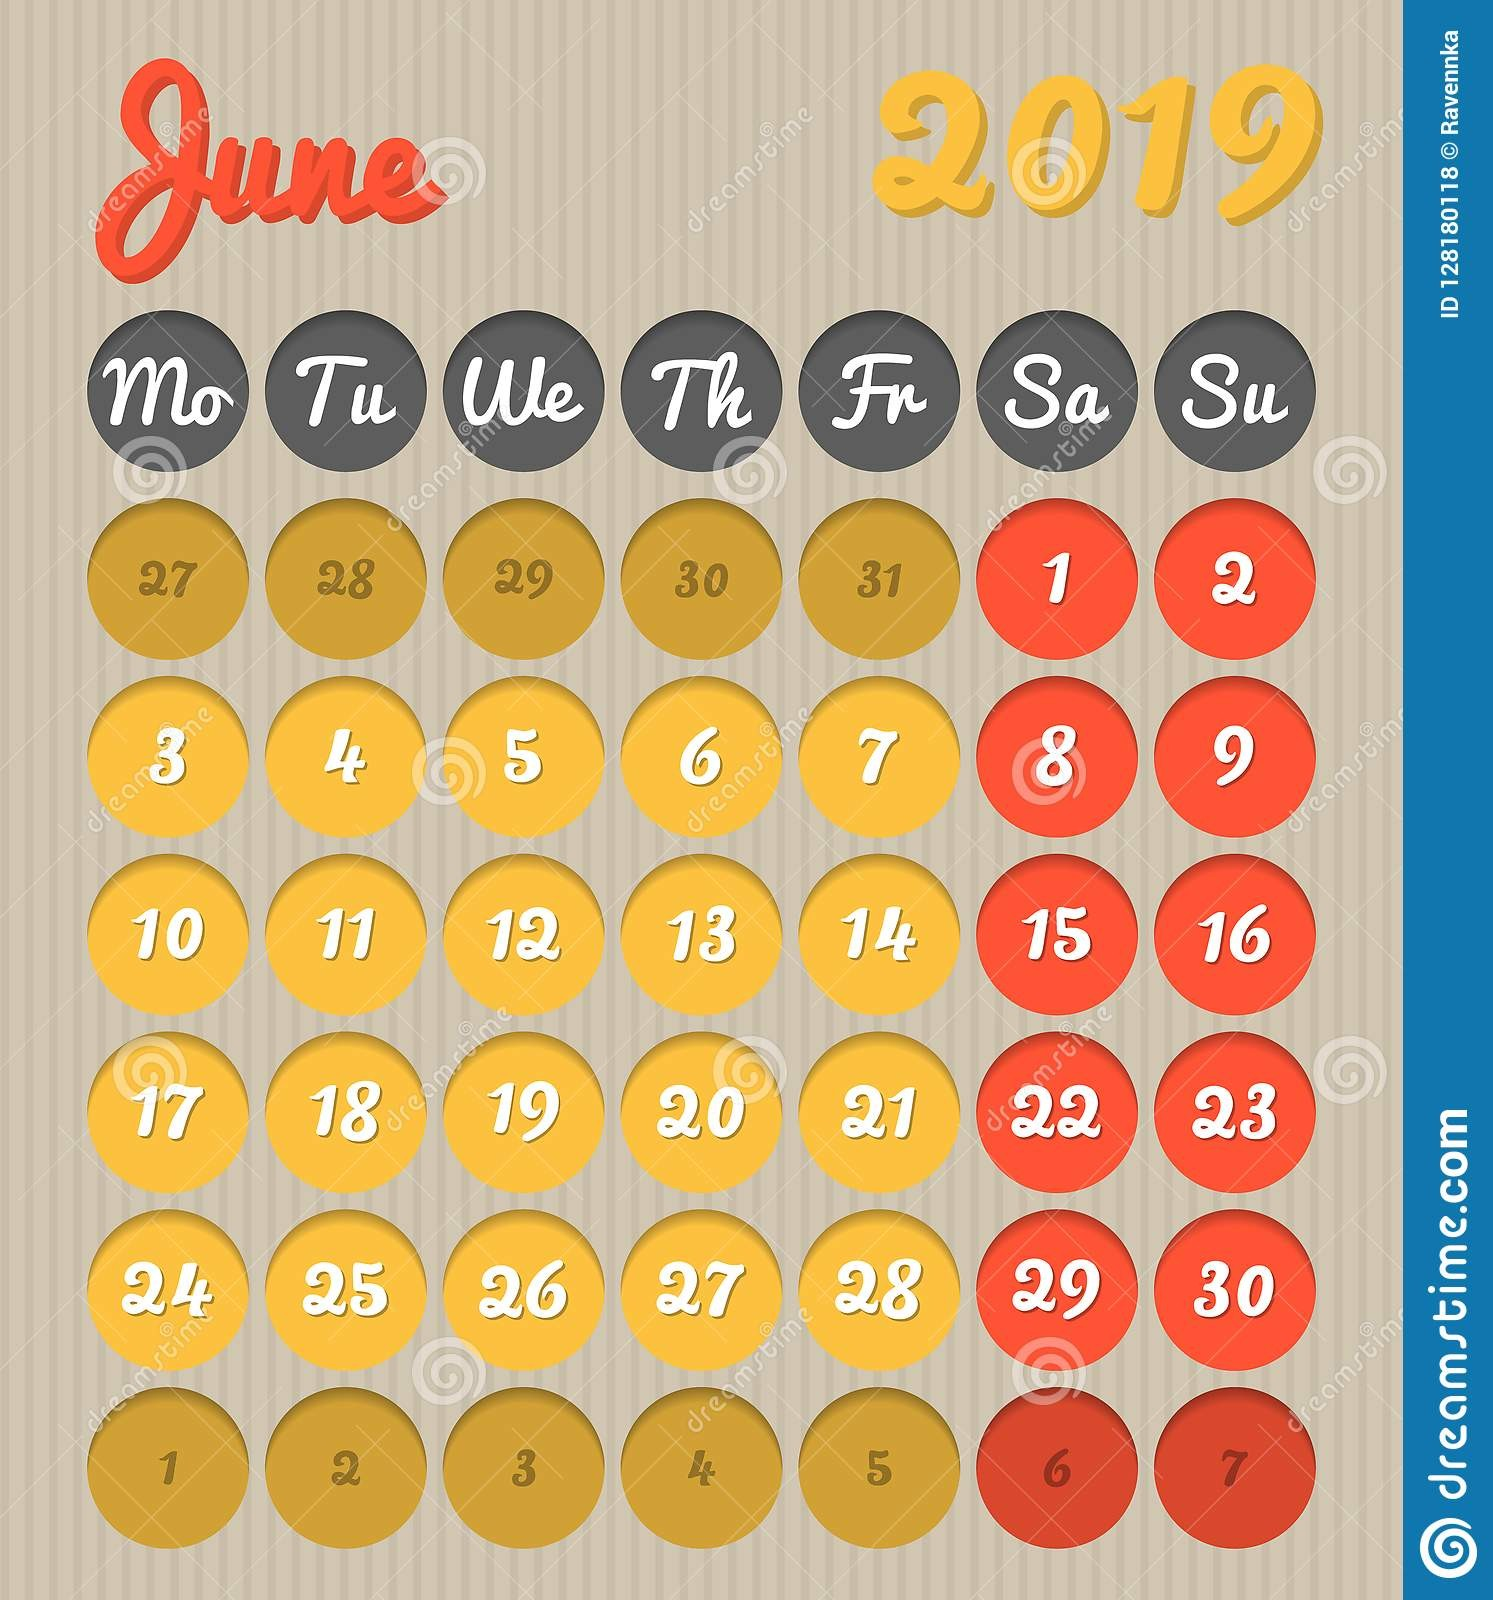 Calendar 2019 Vector Free Download Más Recientes Month Planning Calendar June 2019 Cardboard Style Monday to Of Calendar 2019 Vector Free Download Más Caliente Knowing Desk Calendar 2019 Vector Calendar Free Printable